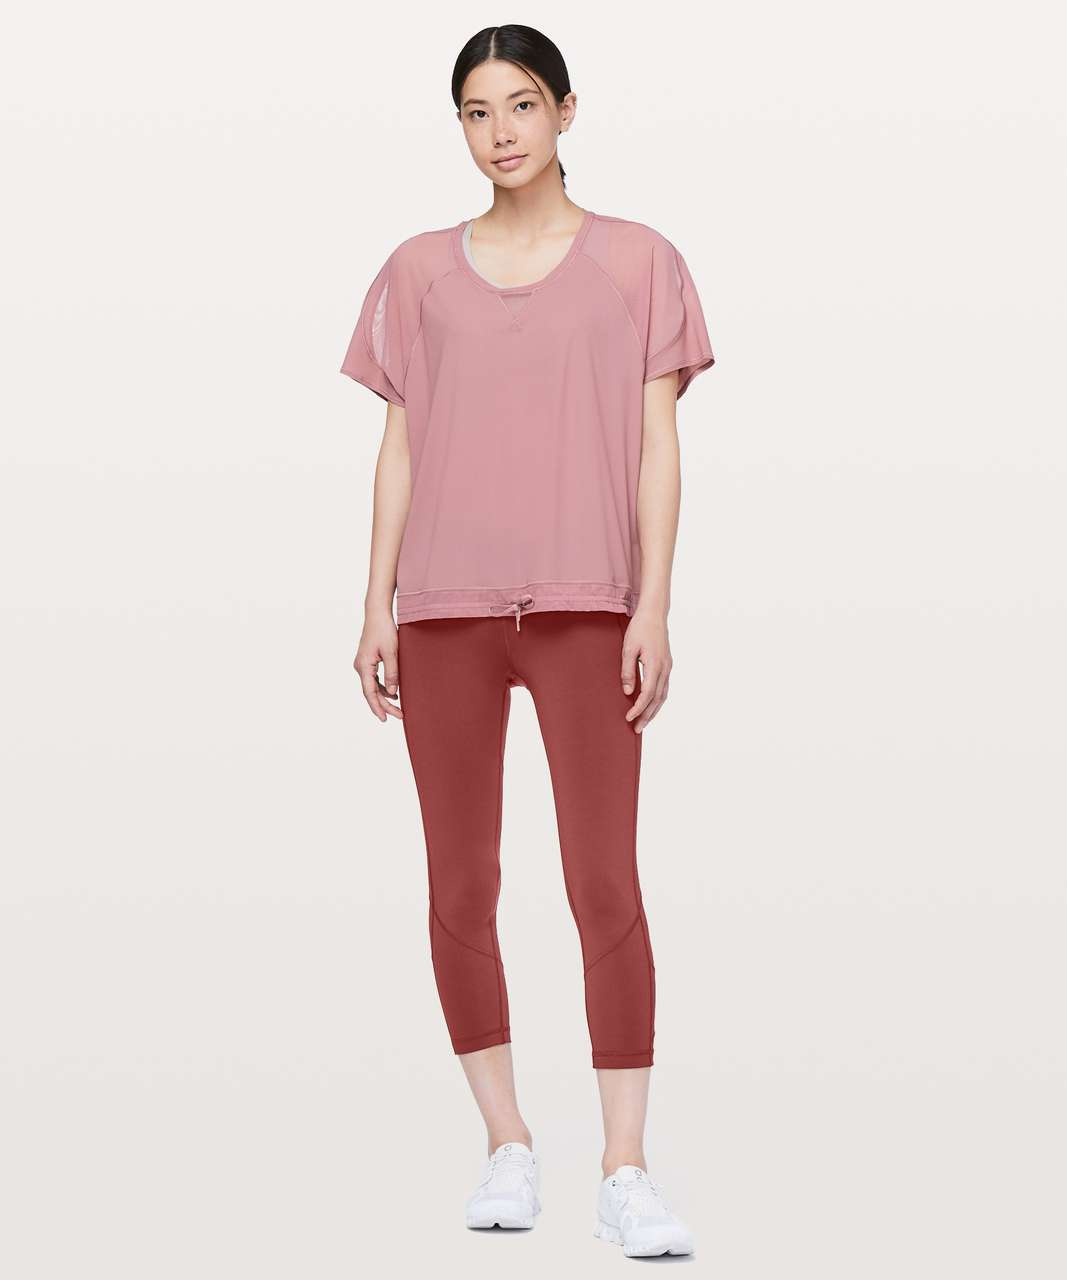 "Lululemon Pace Rival Crop *22"" - Savannah"